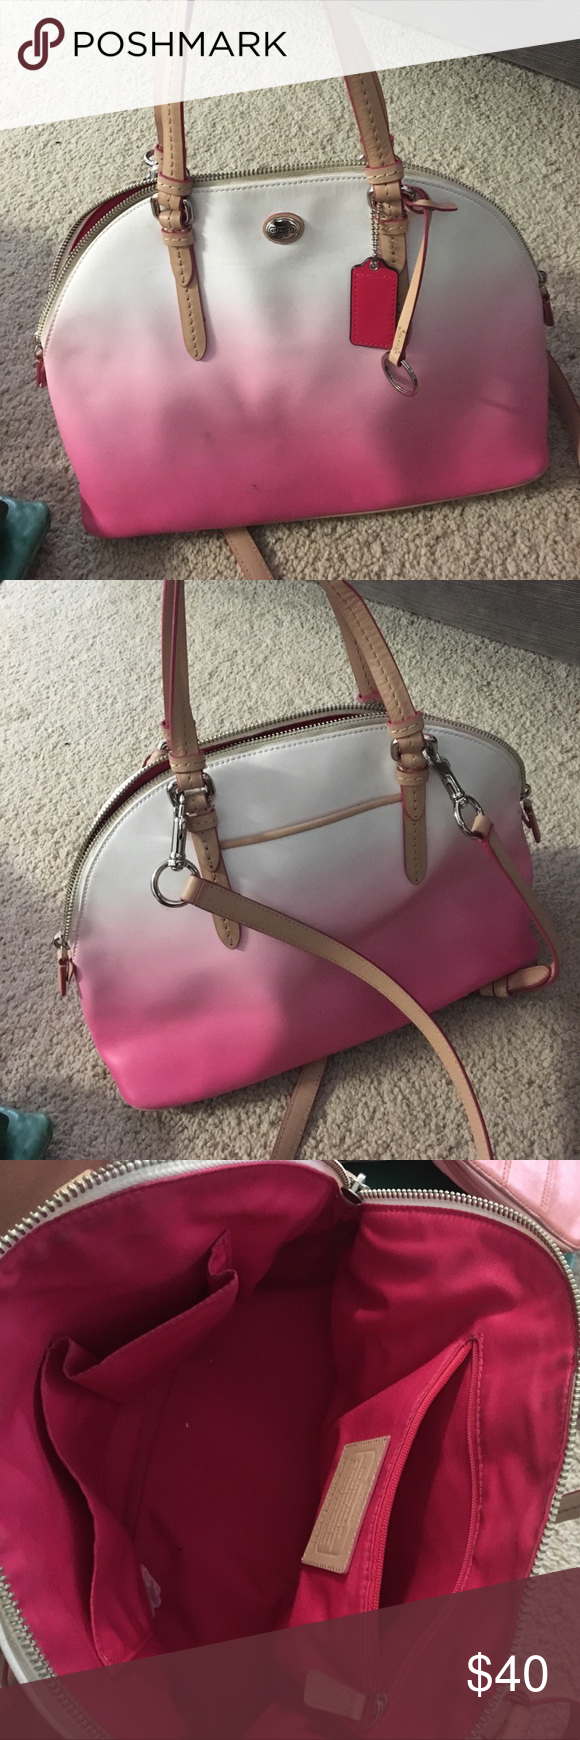 Closeout Coach Tote Red Ombre A17b4 53ca7 Swagger Wristlet In Pebble Leather Watermelon Discount Pink Ombr Purse Beautiful Slightly Used With Some Marks On